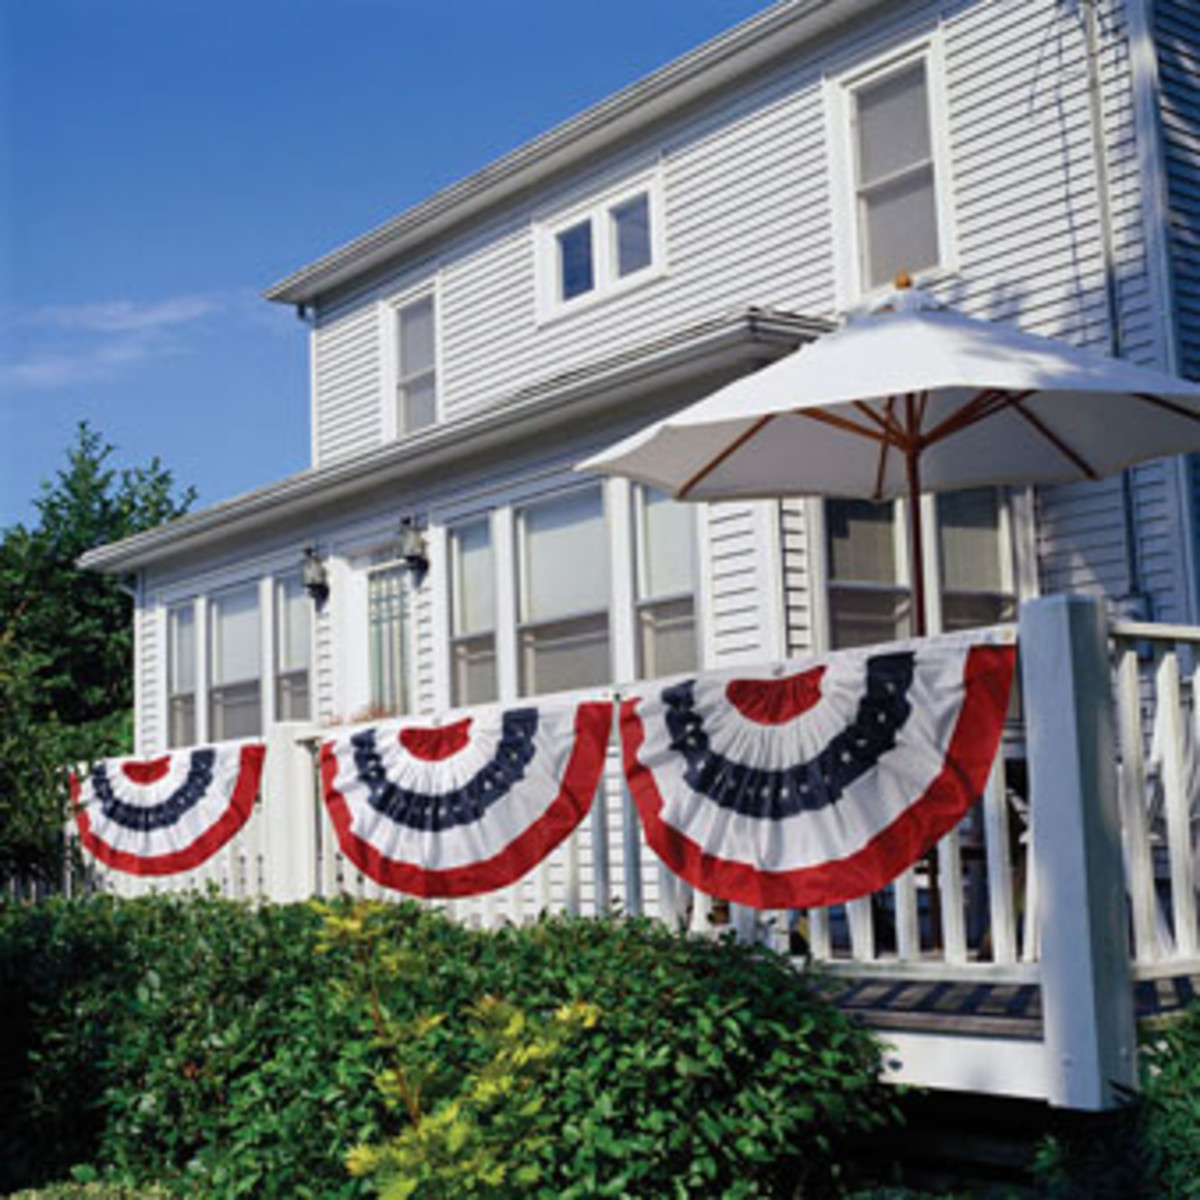 Folks decorated their home in patriotic colors